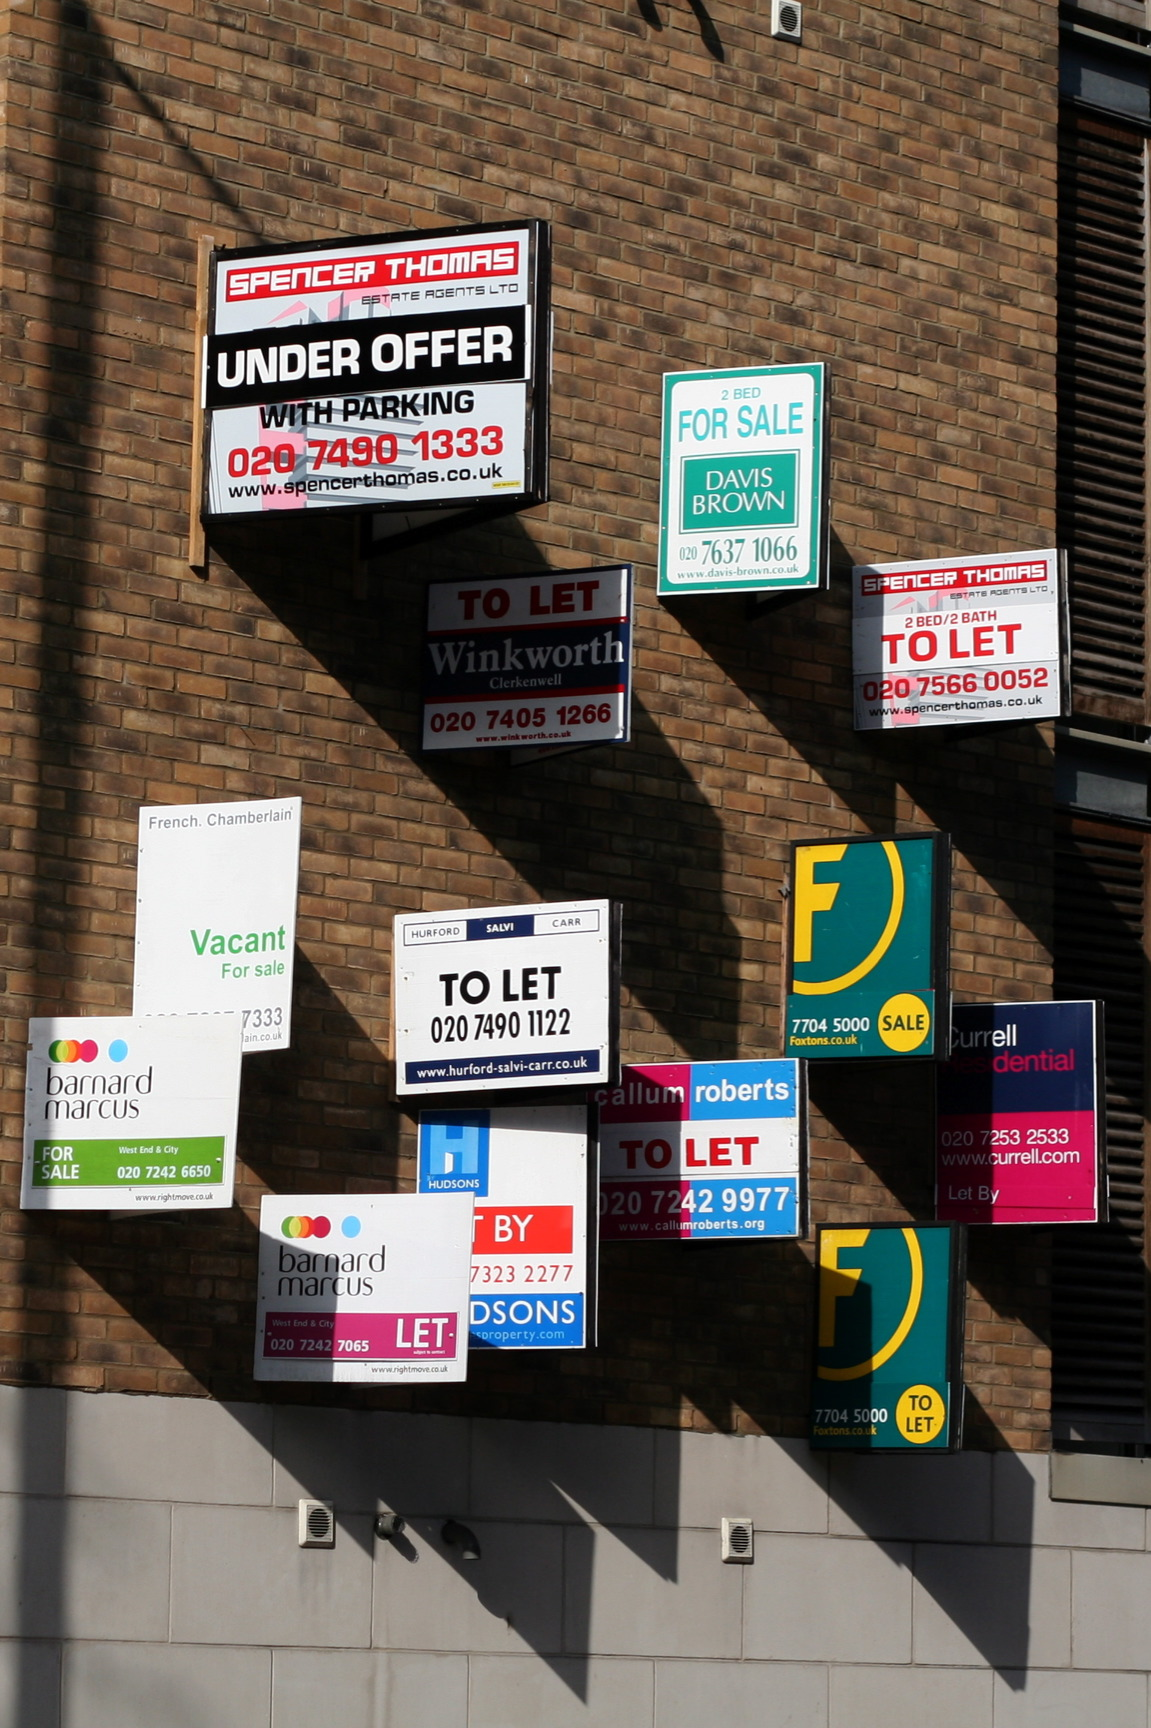 How should you choose an estate agent?